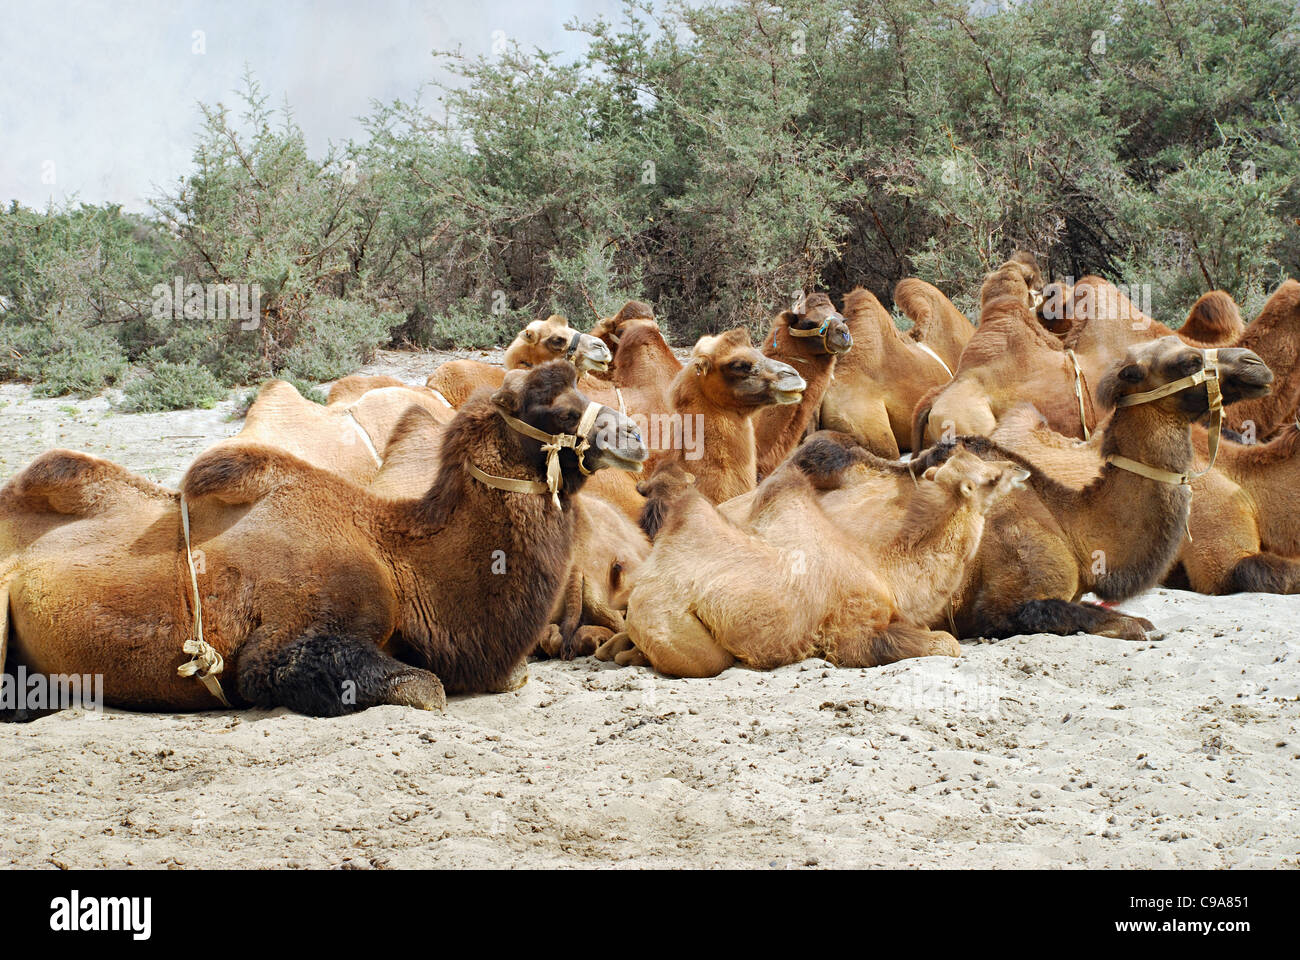 Shaggy Bactrian (two- humped) camels which are shorter and stouter. Their humps are plump and pliable and collapse - Stock Image